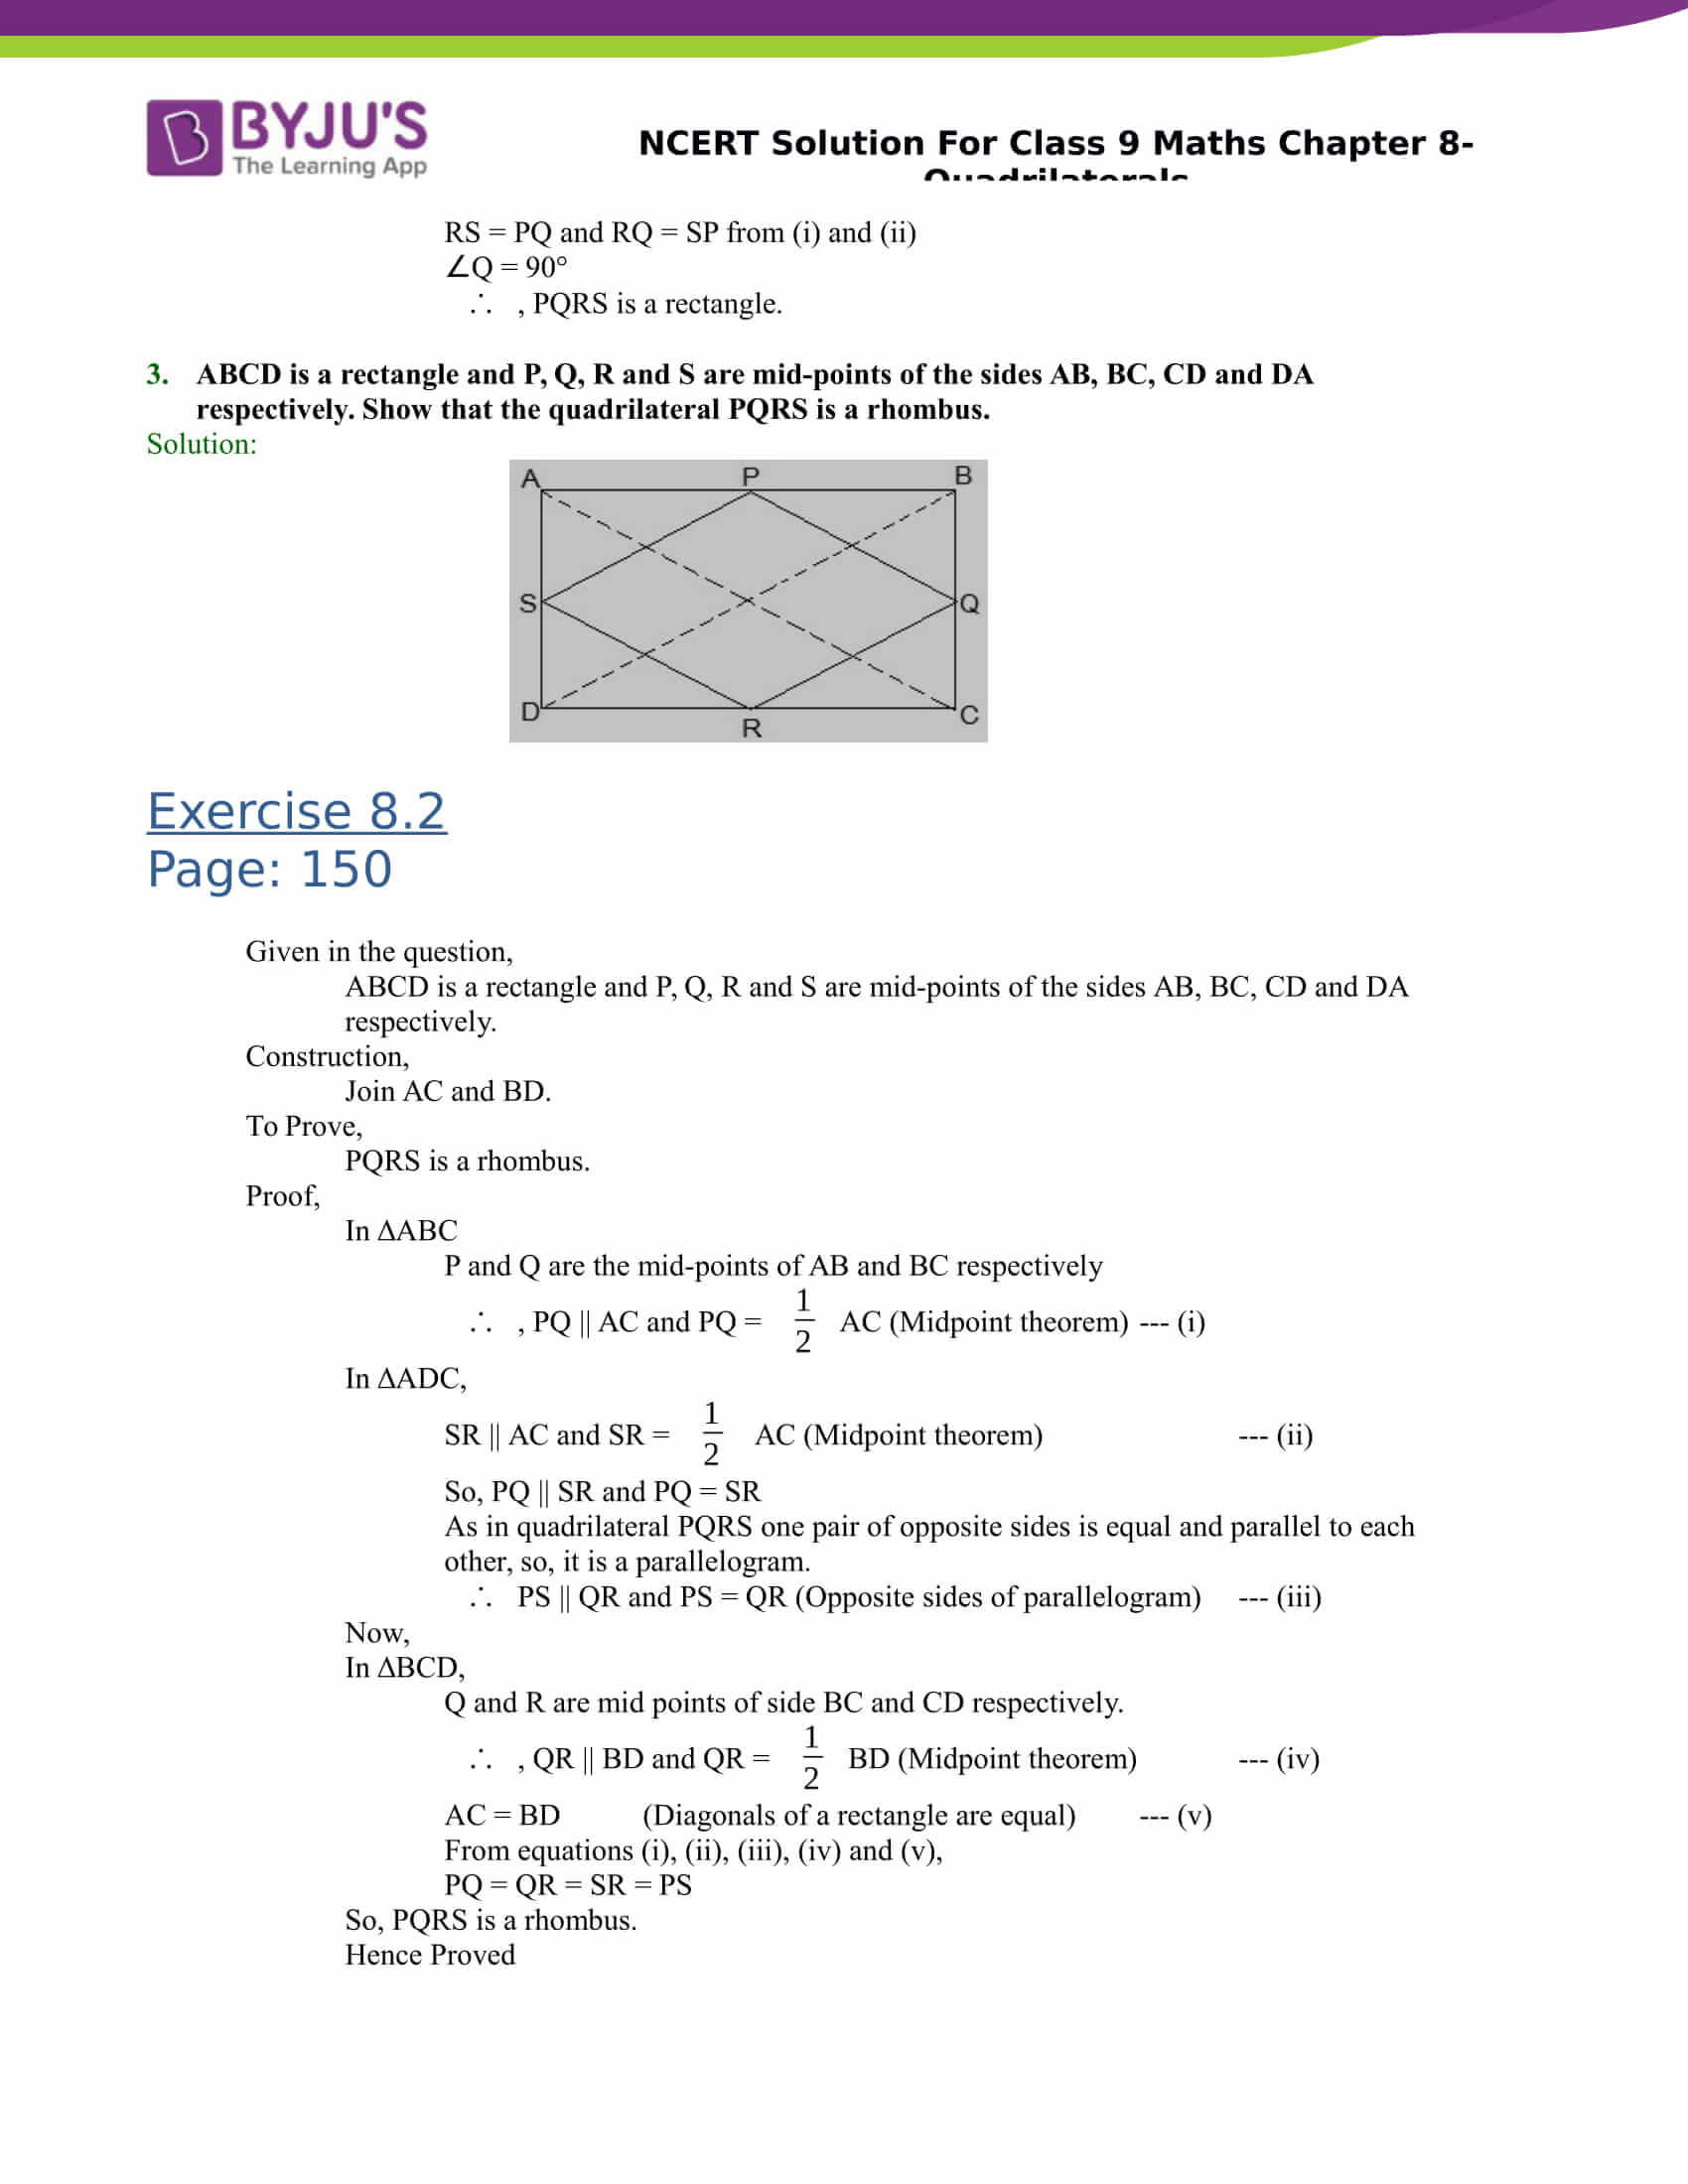 NCERT Solutions Class 9 Maths Chapter 8 Quadrilaterals